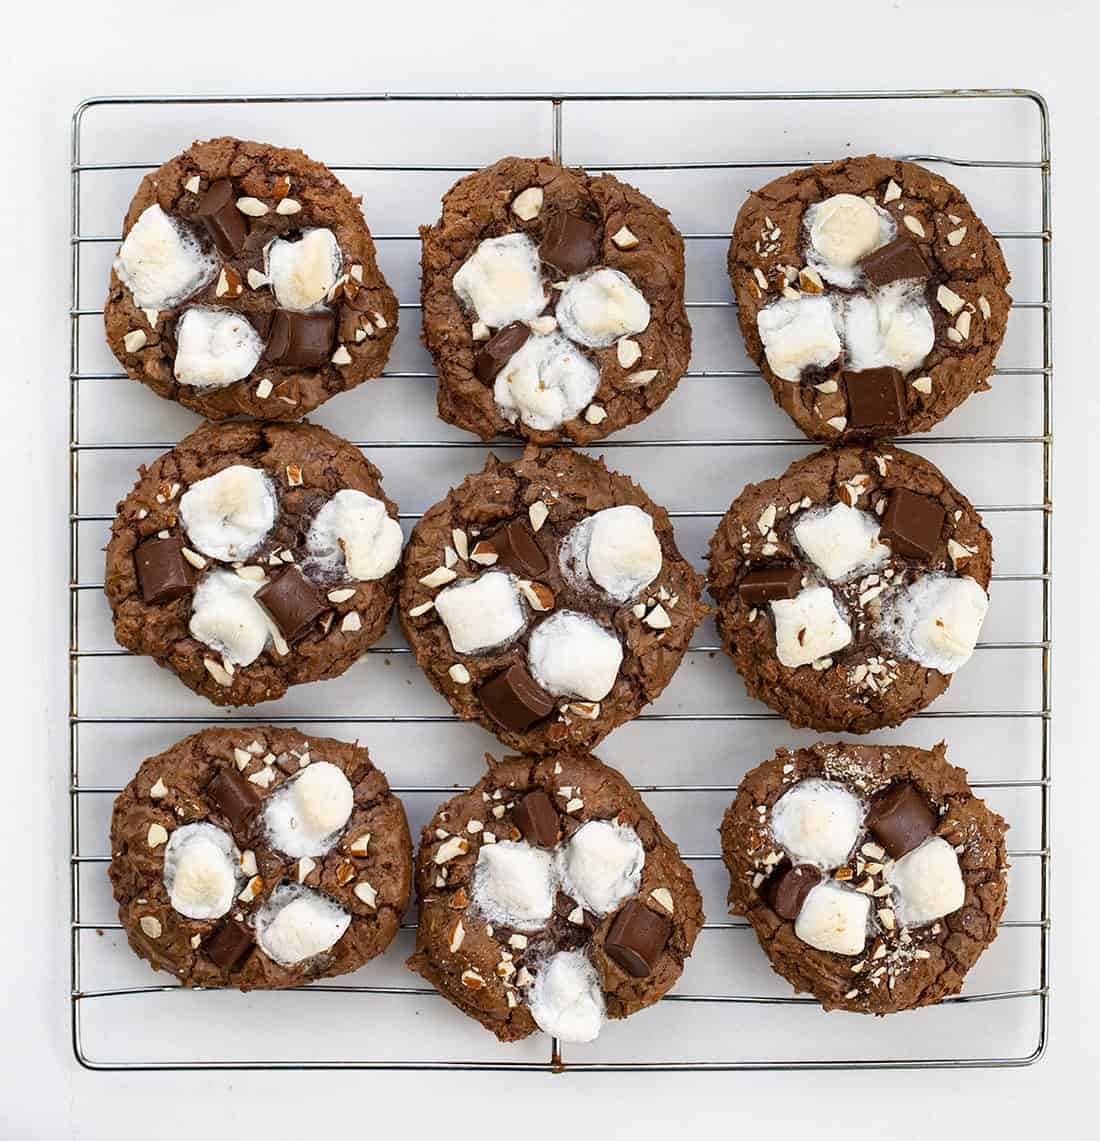 Rocky Road Cookies from Overhead on Cooling Rack